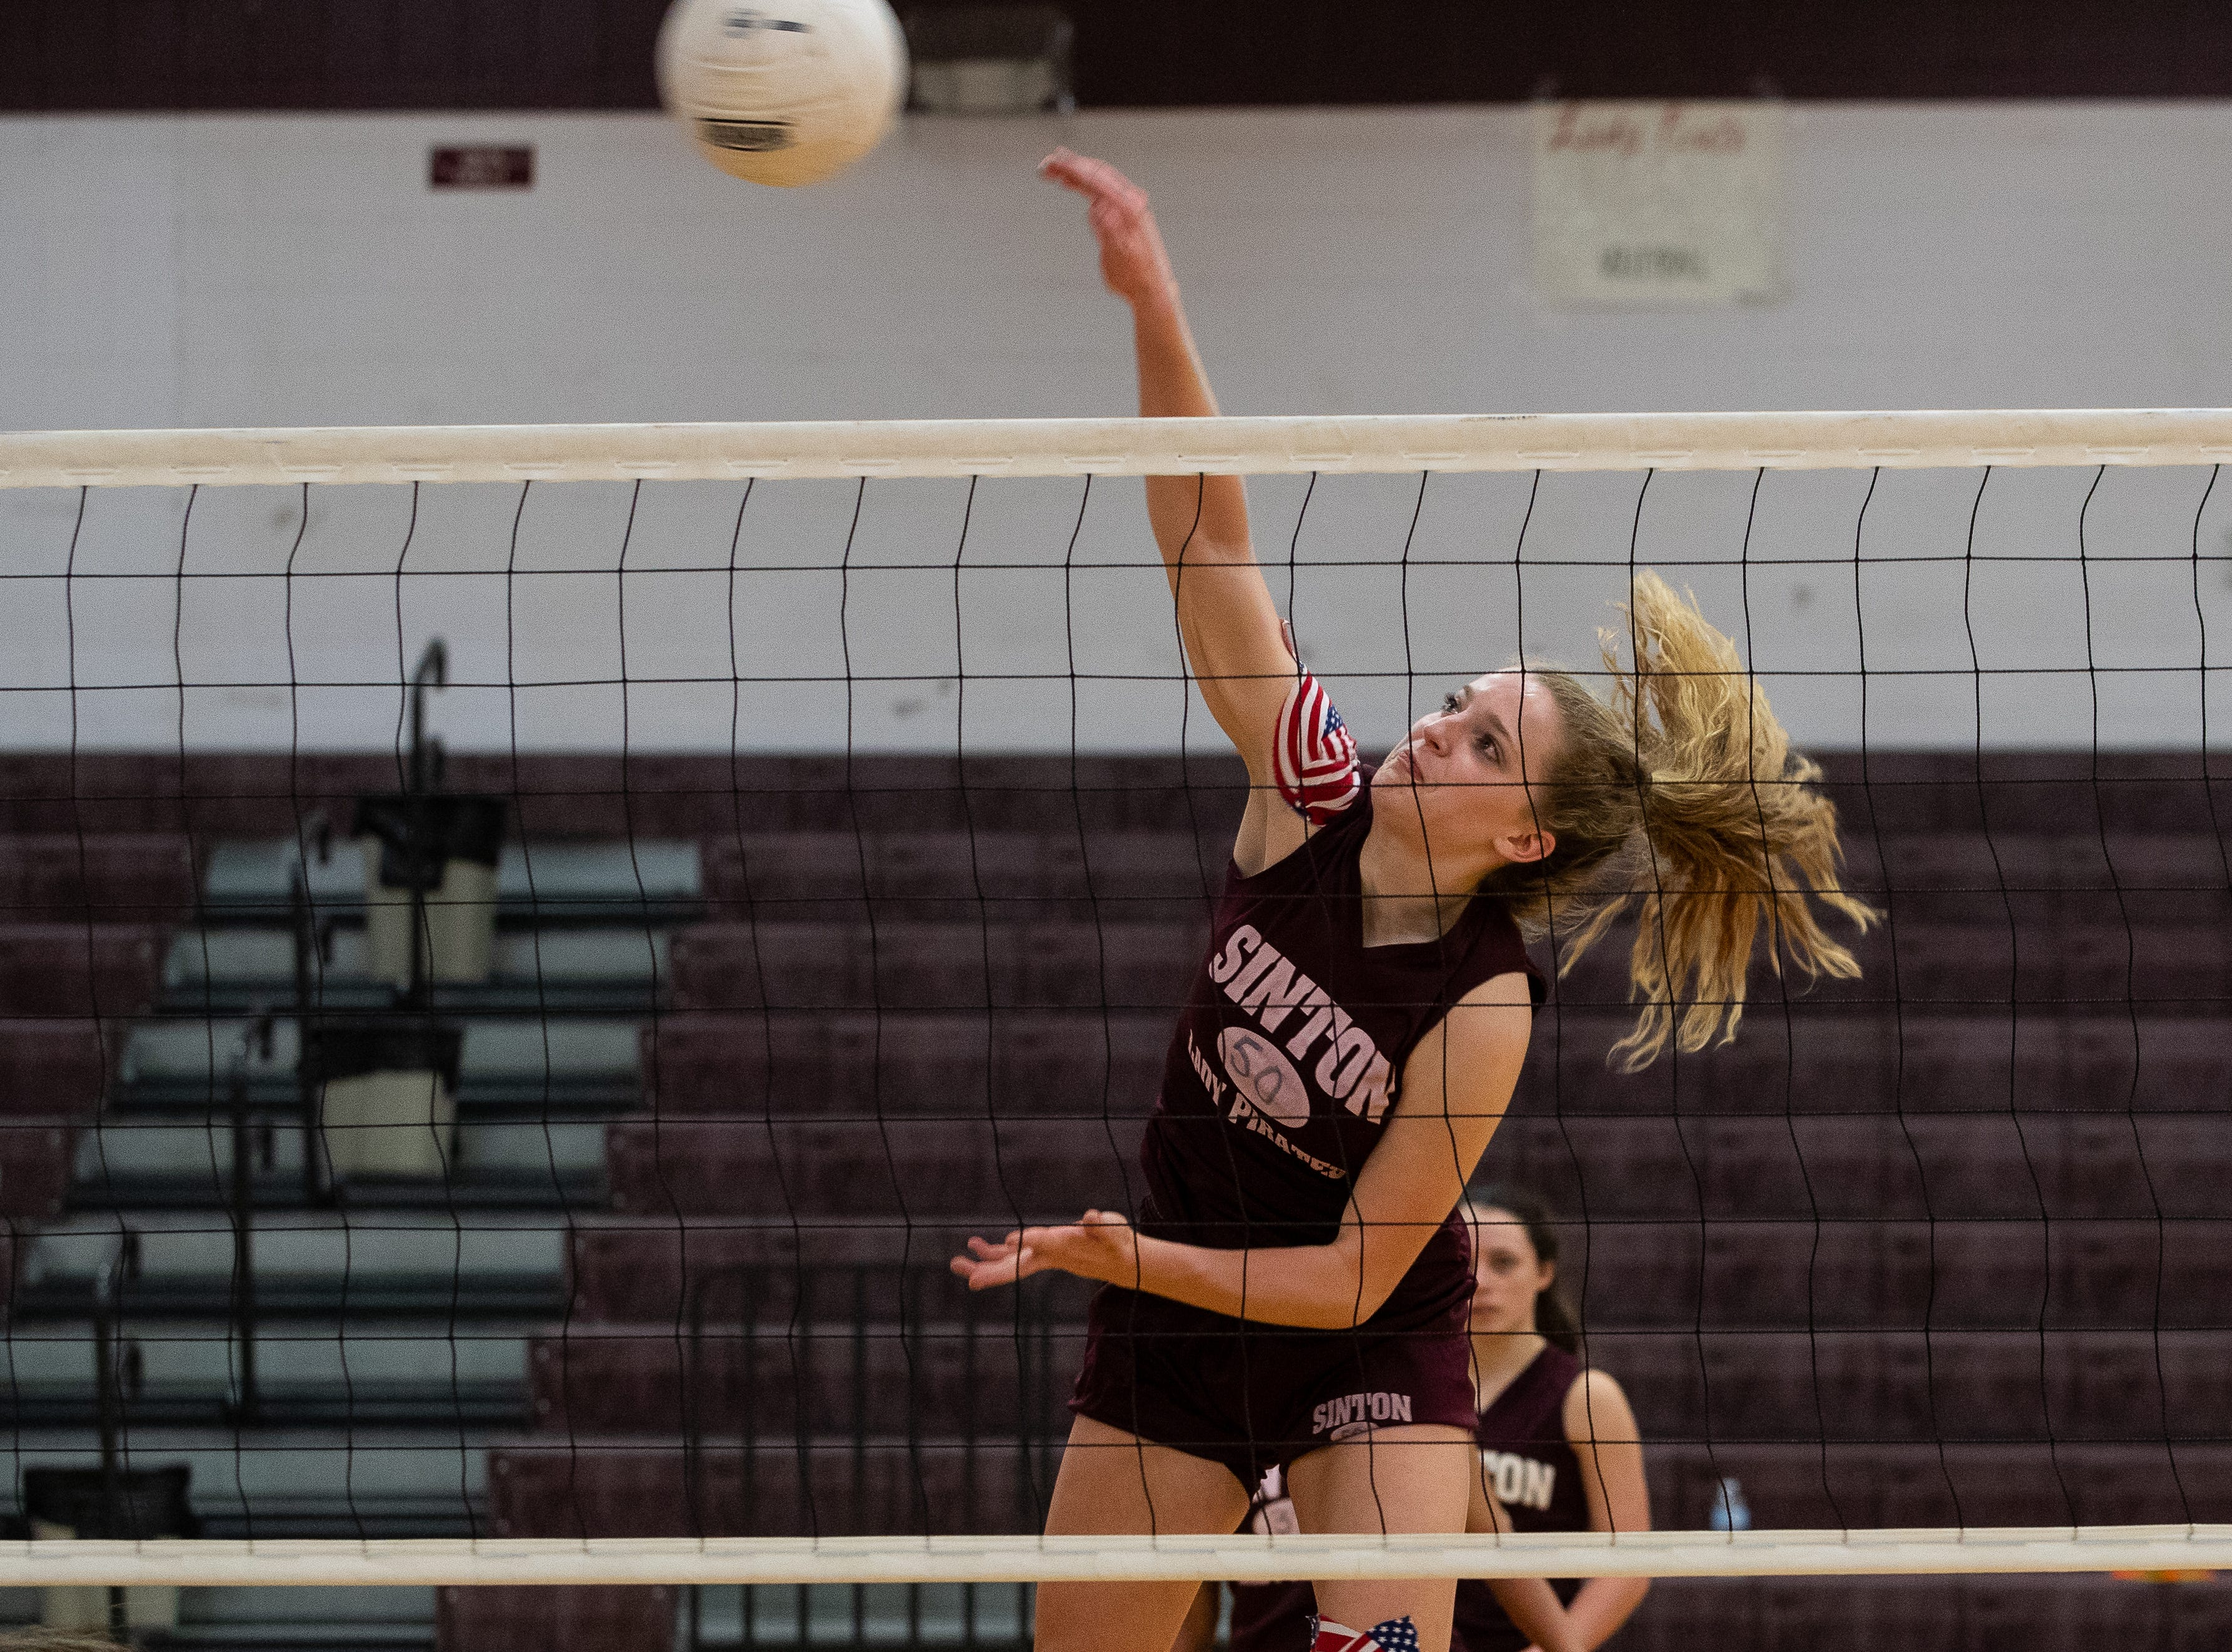 Sinton's Lela Thomas spikes the ball during practice at Sinton High school on Wednesday, Sept. 5, 2018. Lela Thomas plays with her cousins Stella, Emma and Anna Thomas.